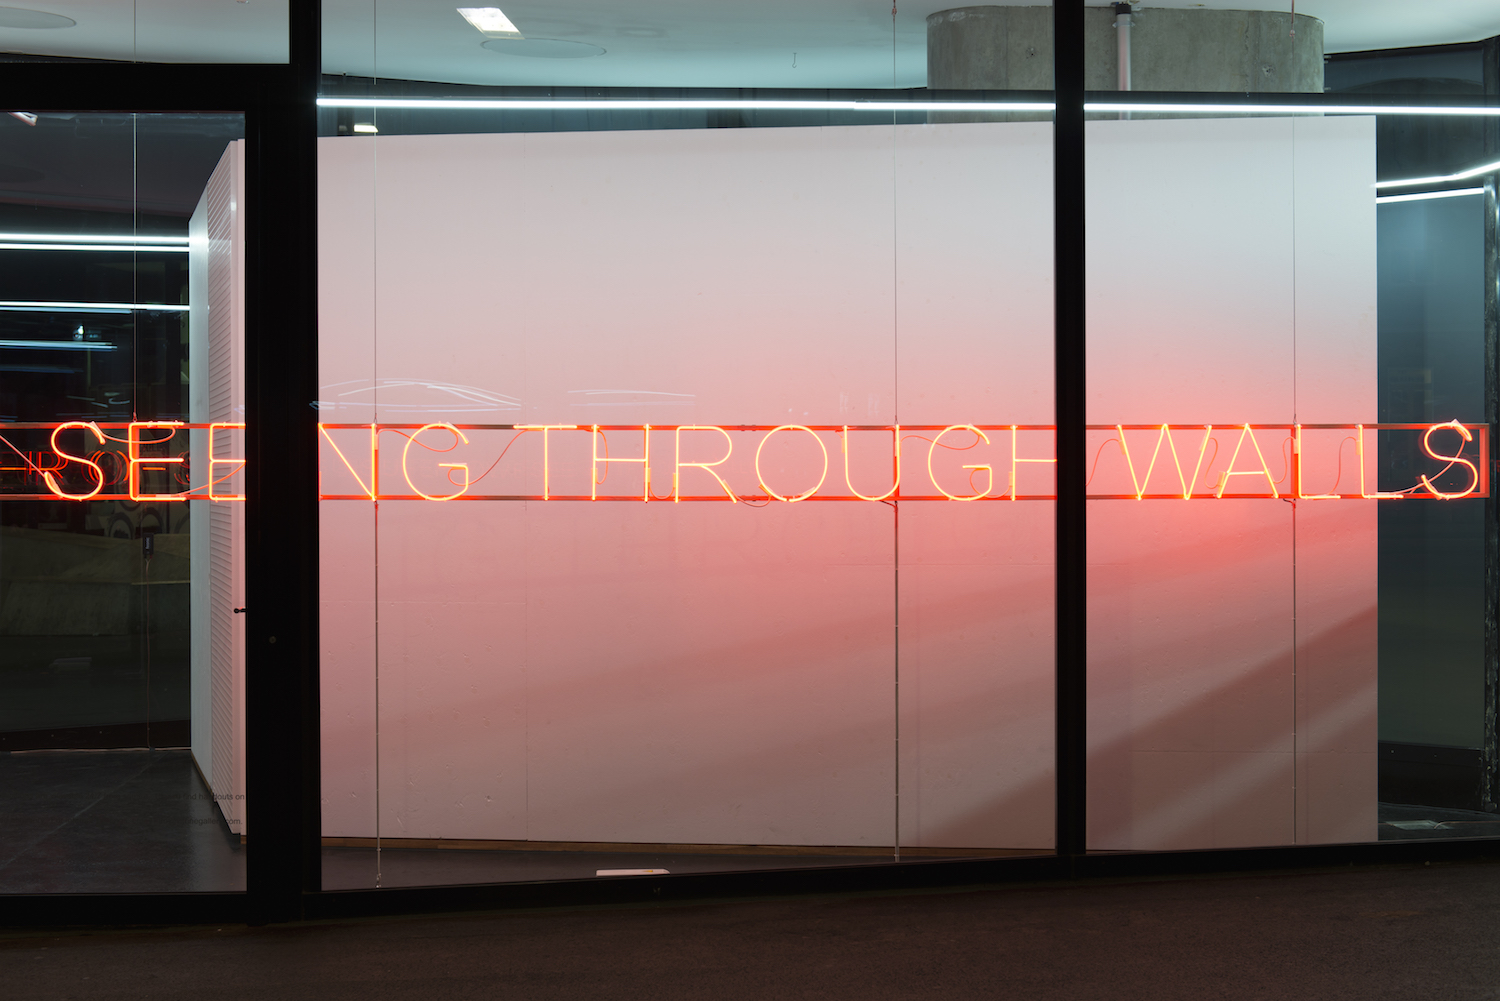 Tim Etchells, SEEING THROUGH WALLS, 2017. Neon (red), four transformers, cables, white oak frame, steal wire. 27.5 x 1001 x 10 cm. Edition 3 (+1AP). Photographer: Nici Jost.